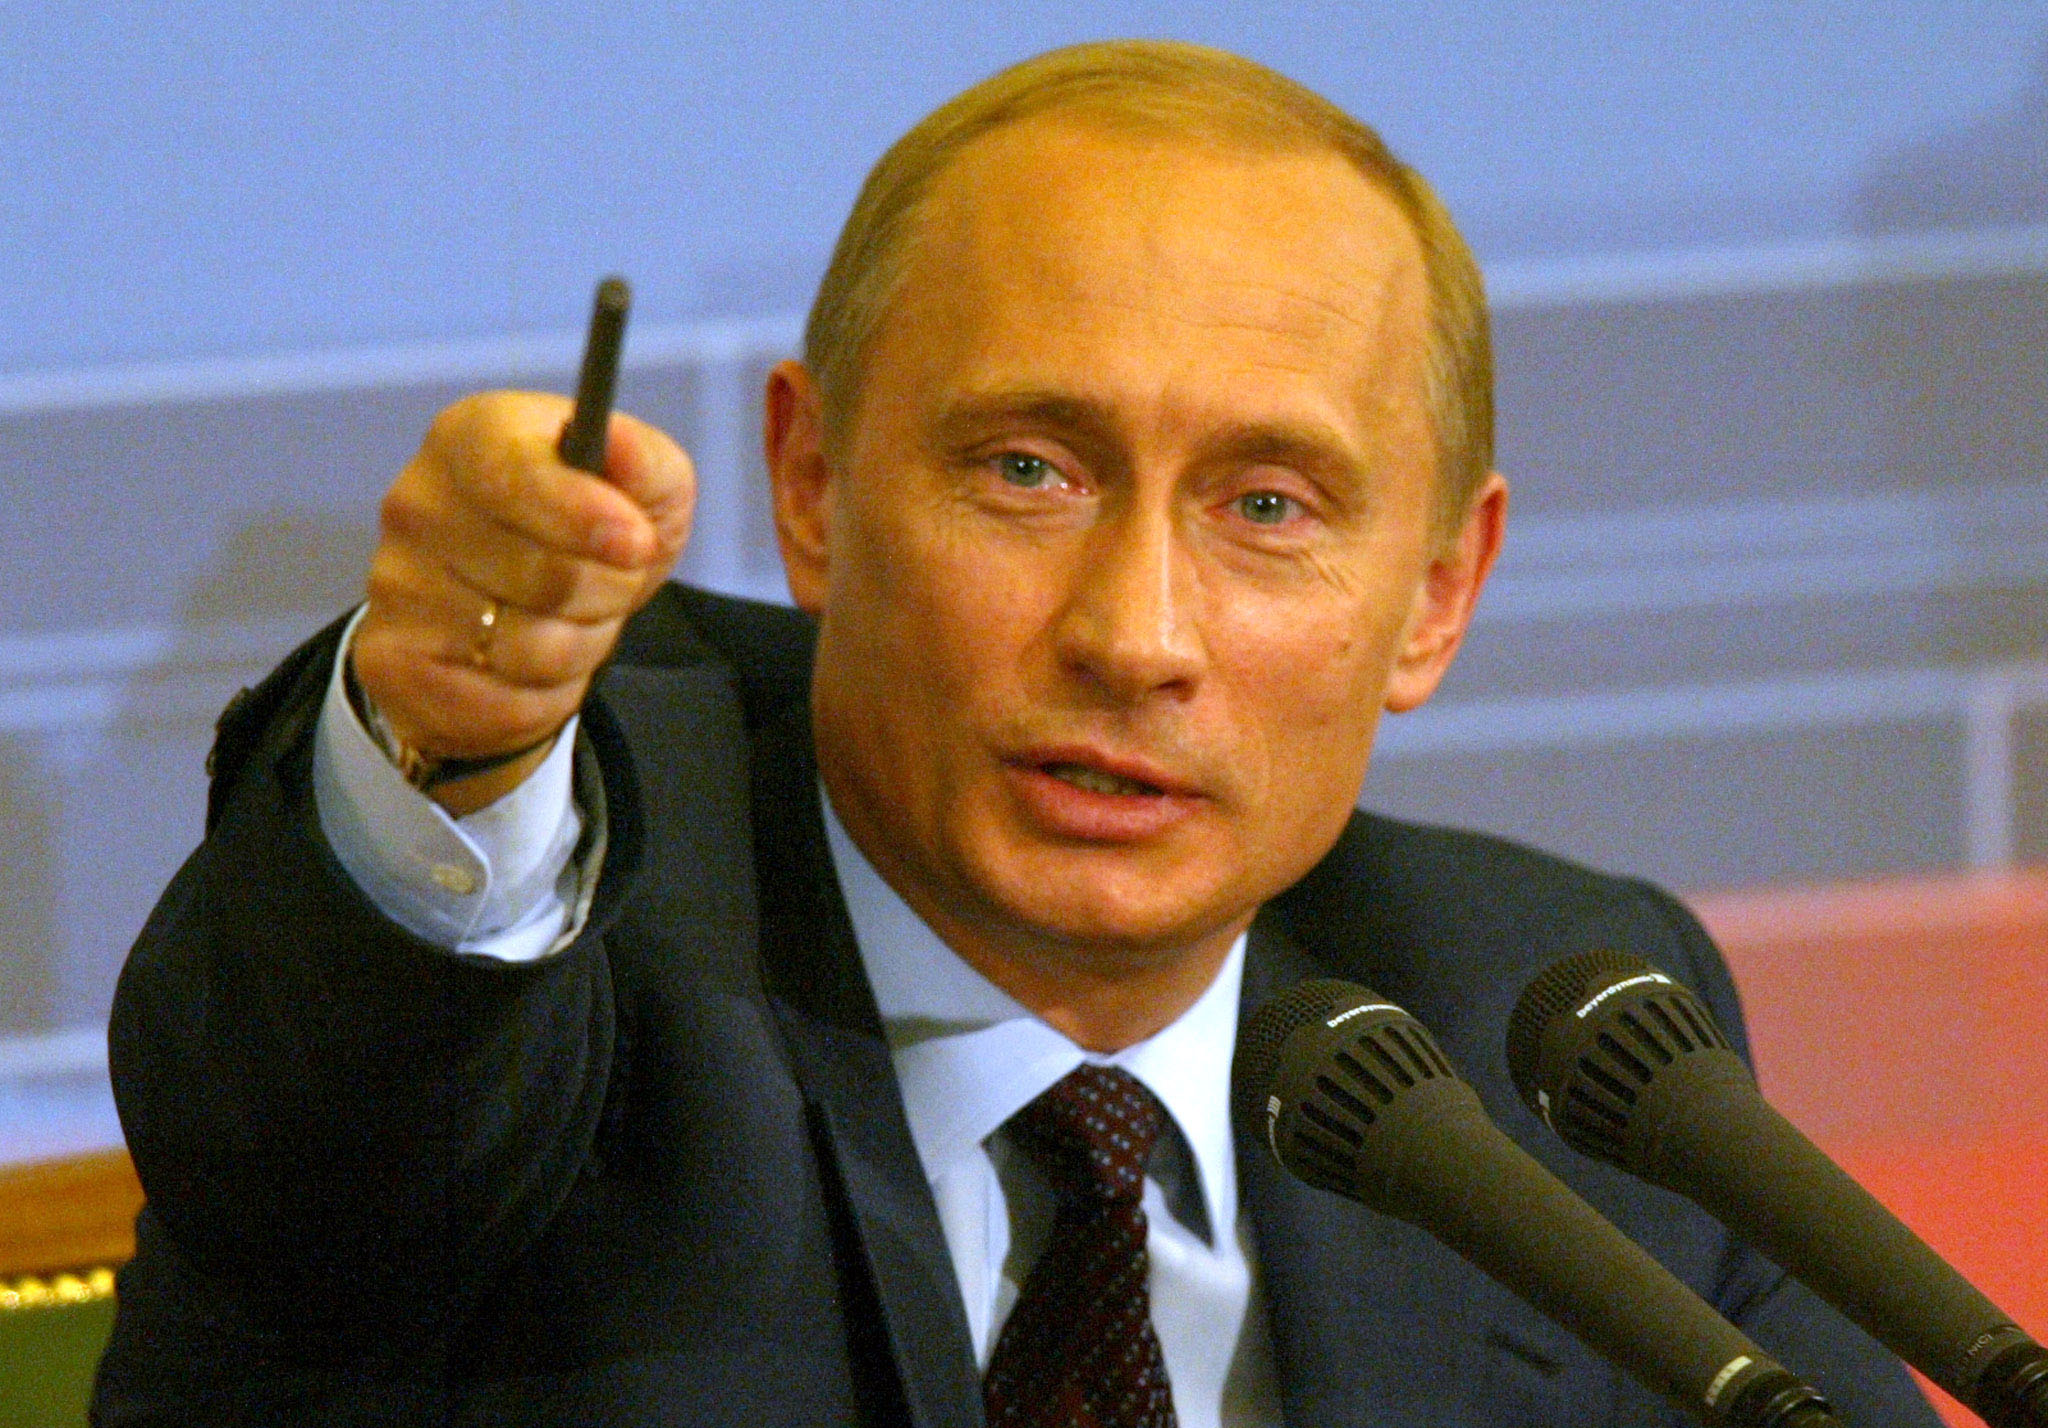 Vladimir Putin, president of the Russian Federation.